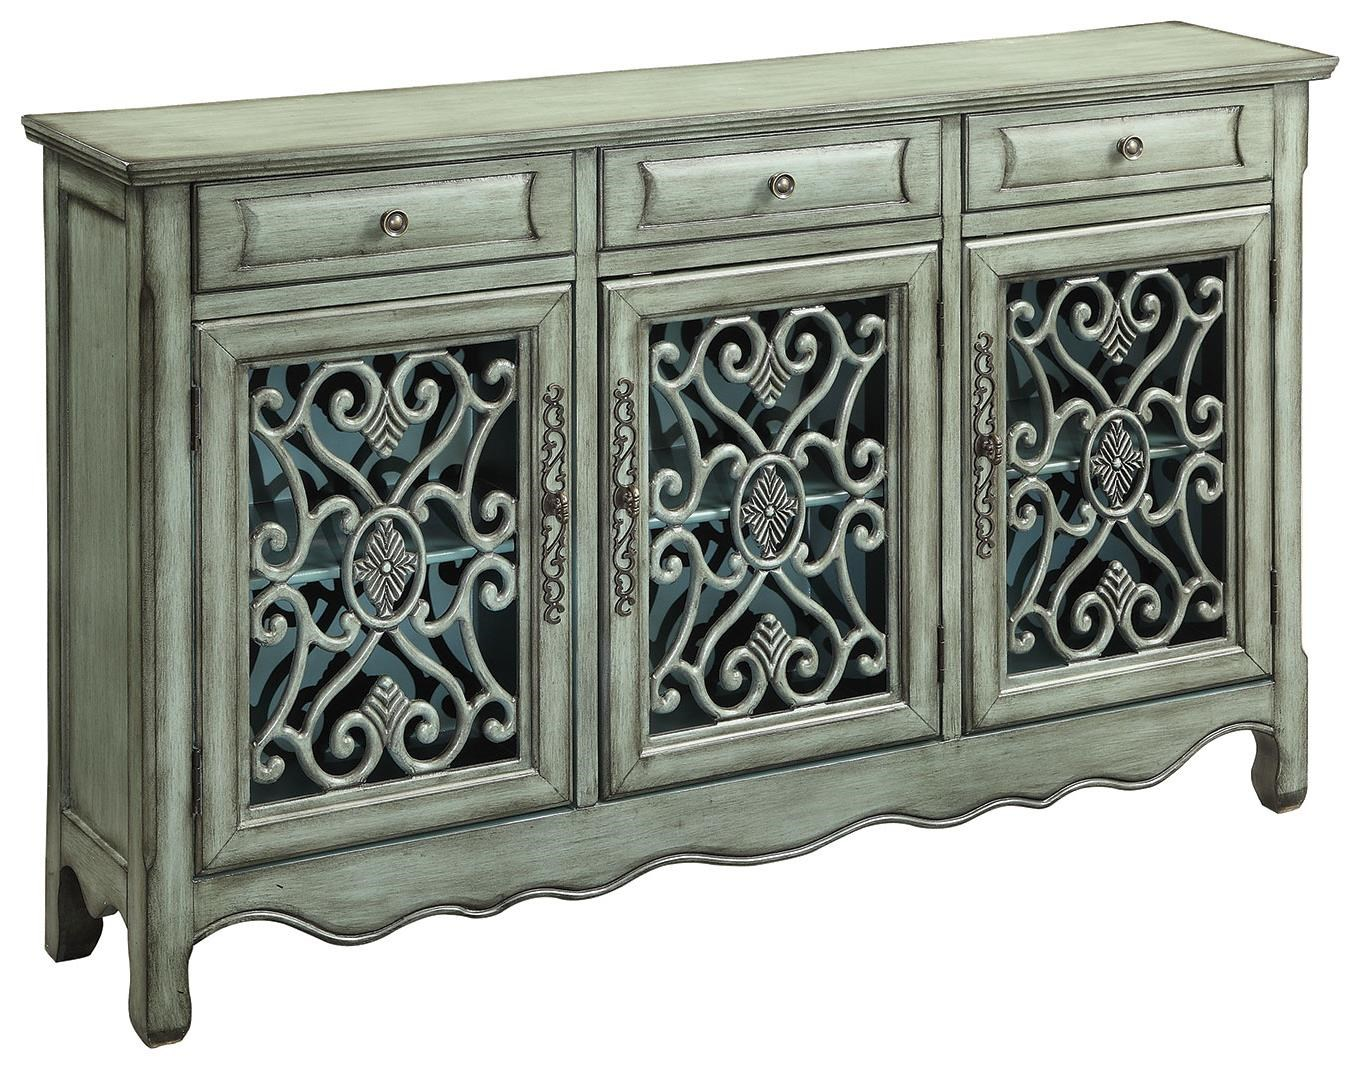 Delicieux Coaster Accent Cabinets Traditional Accent Cabinet In Antique Green Finish    Coaster Fine Furniture